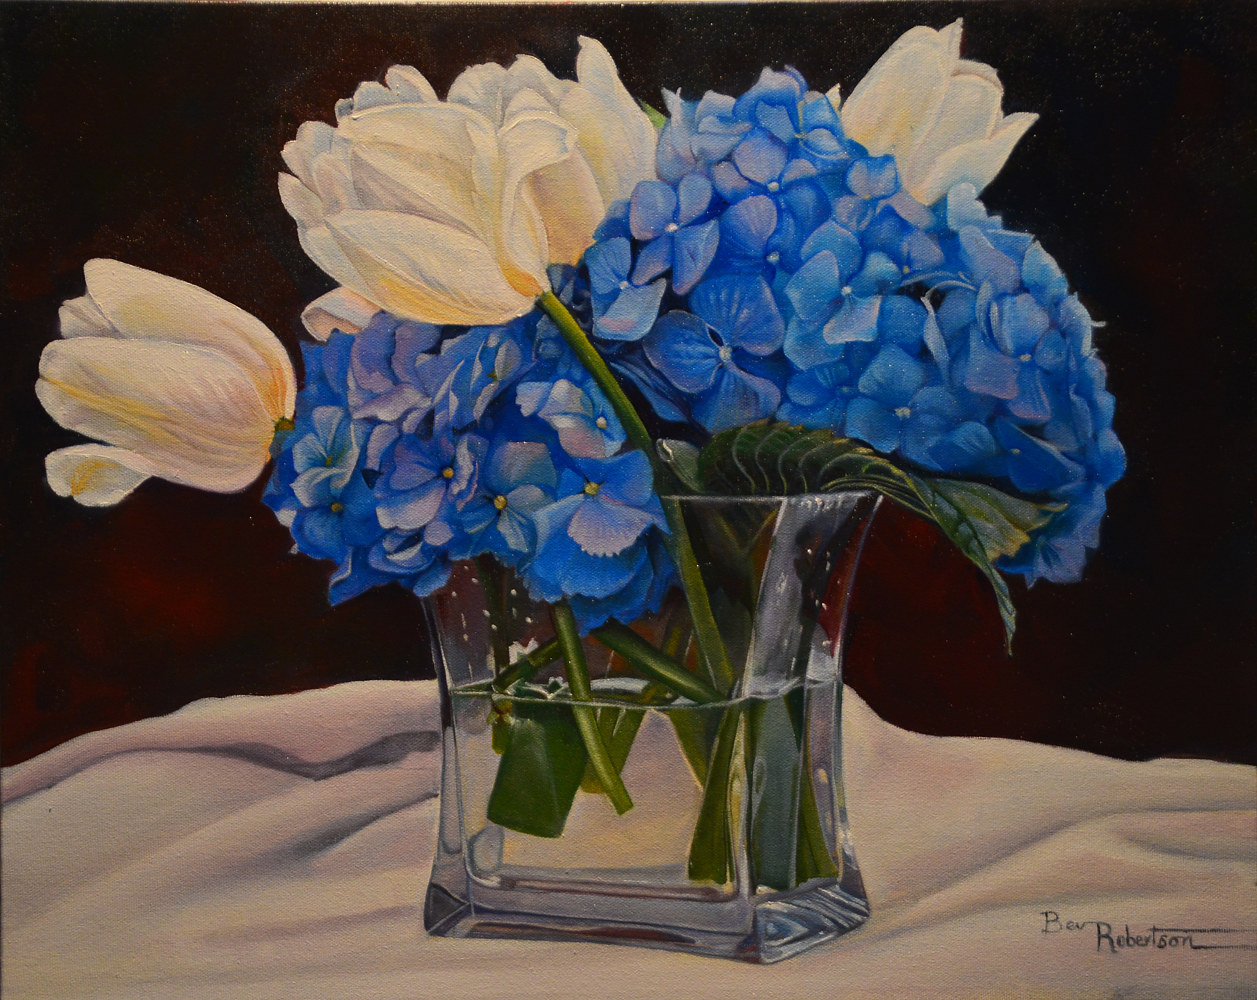 bev-robertson-hydrangea and Tulips by Bev Robertson